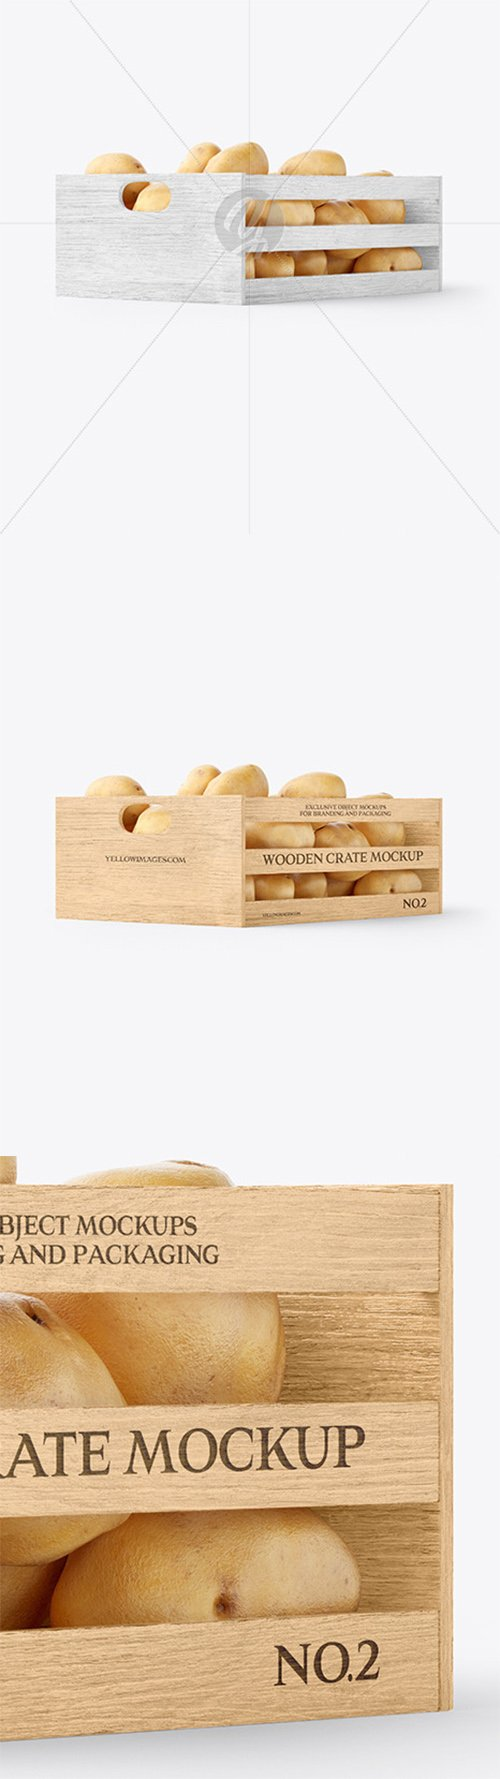 Crate with Potatoes Mockup - Half Side View 60646 TIF